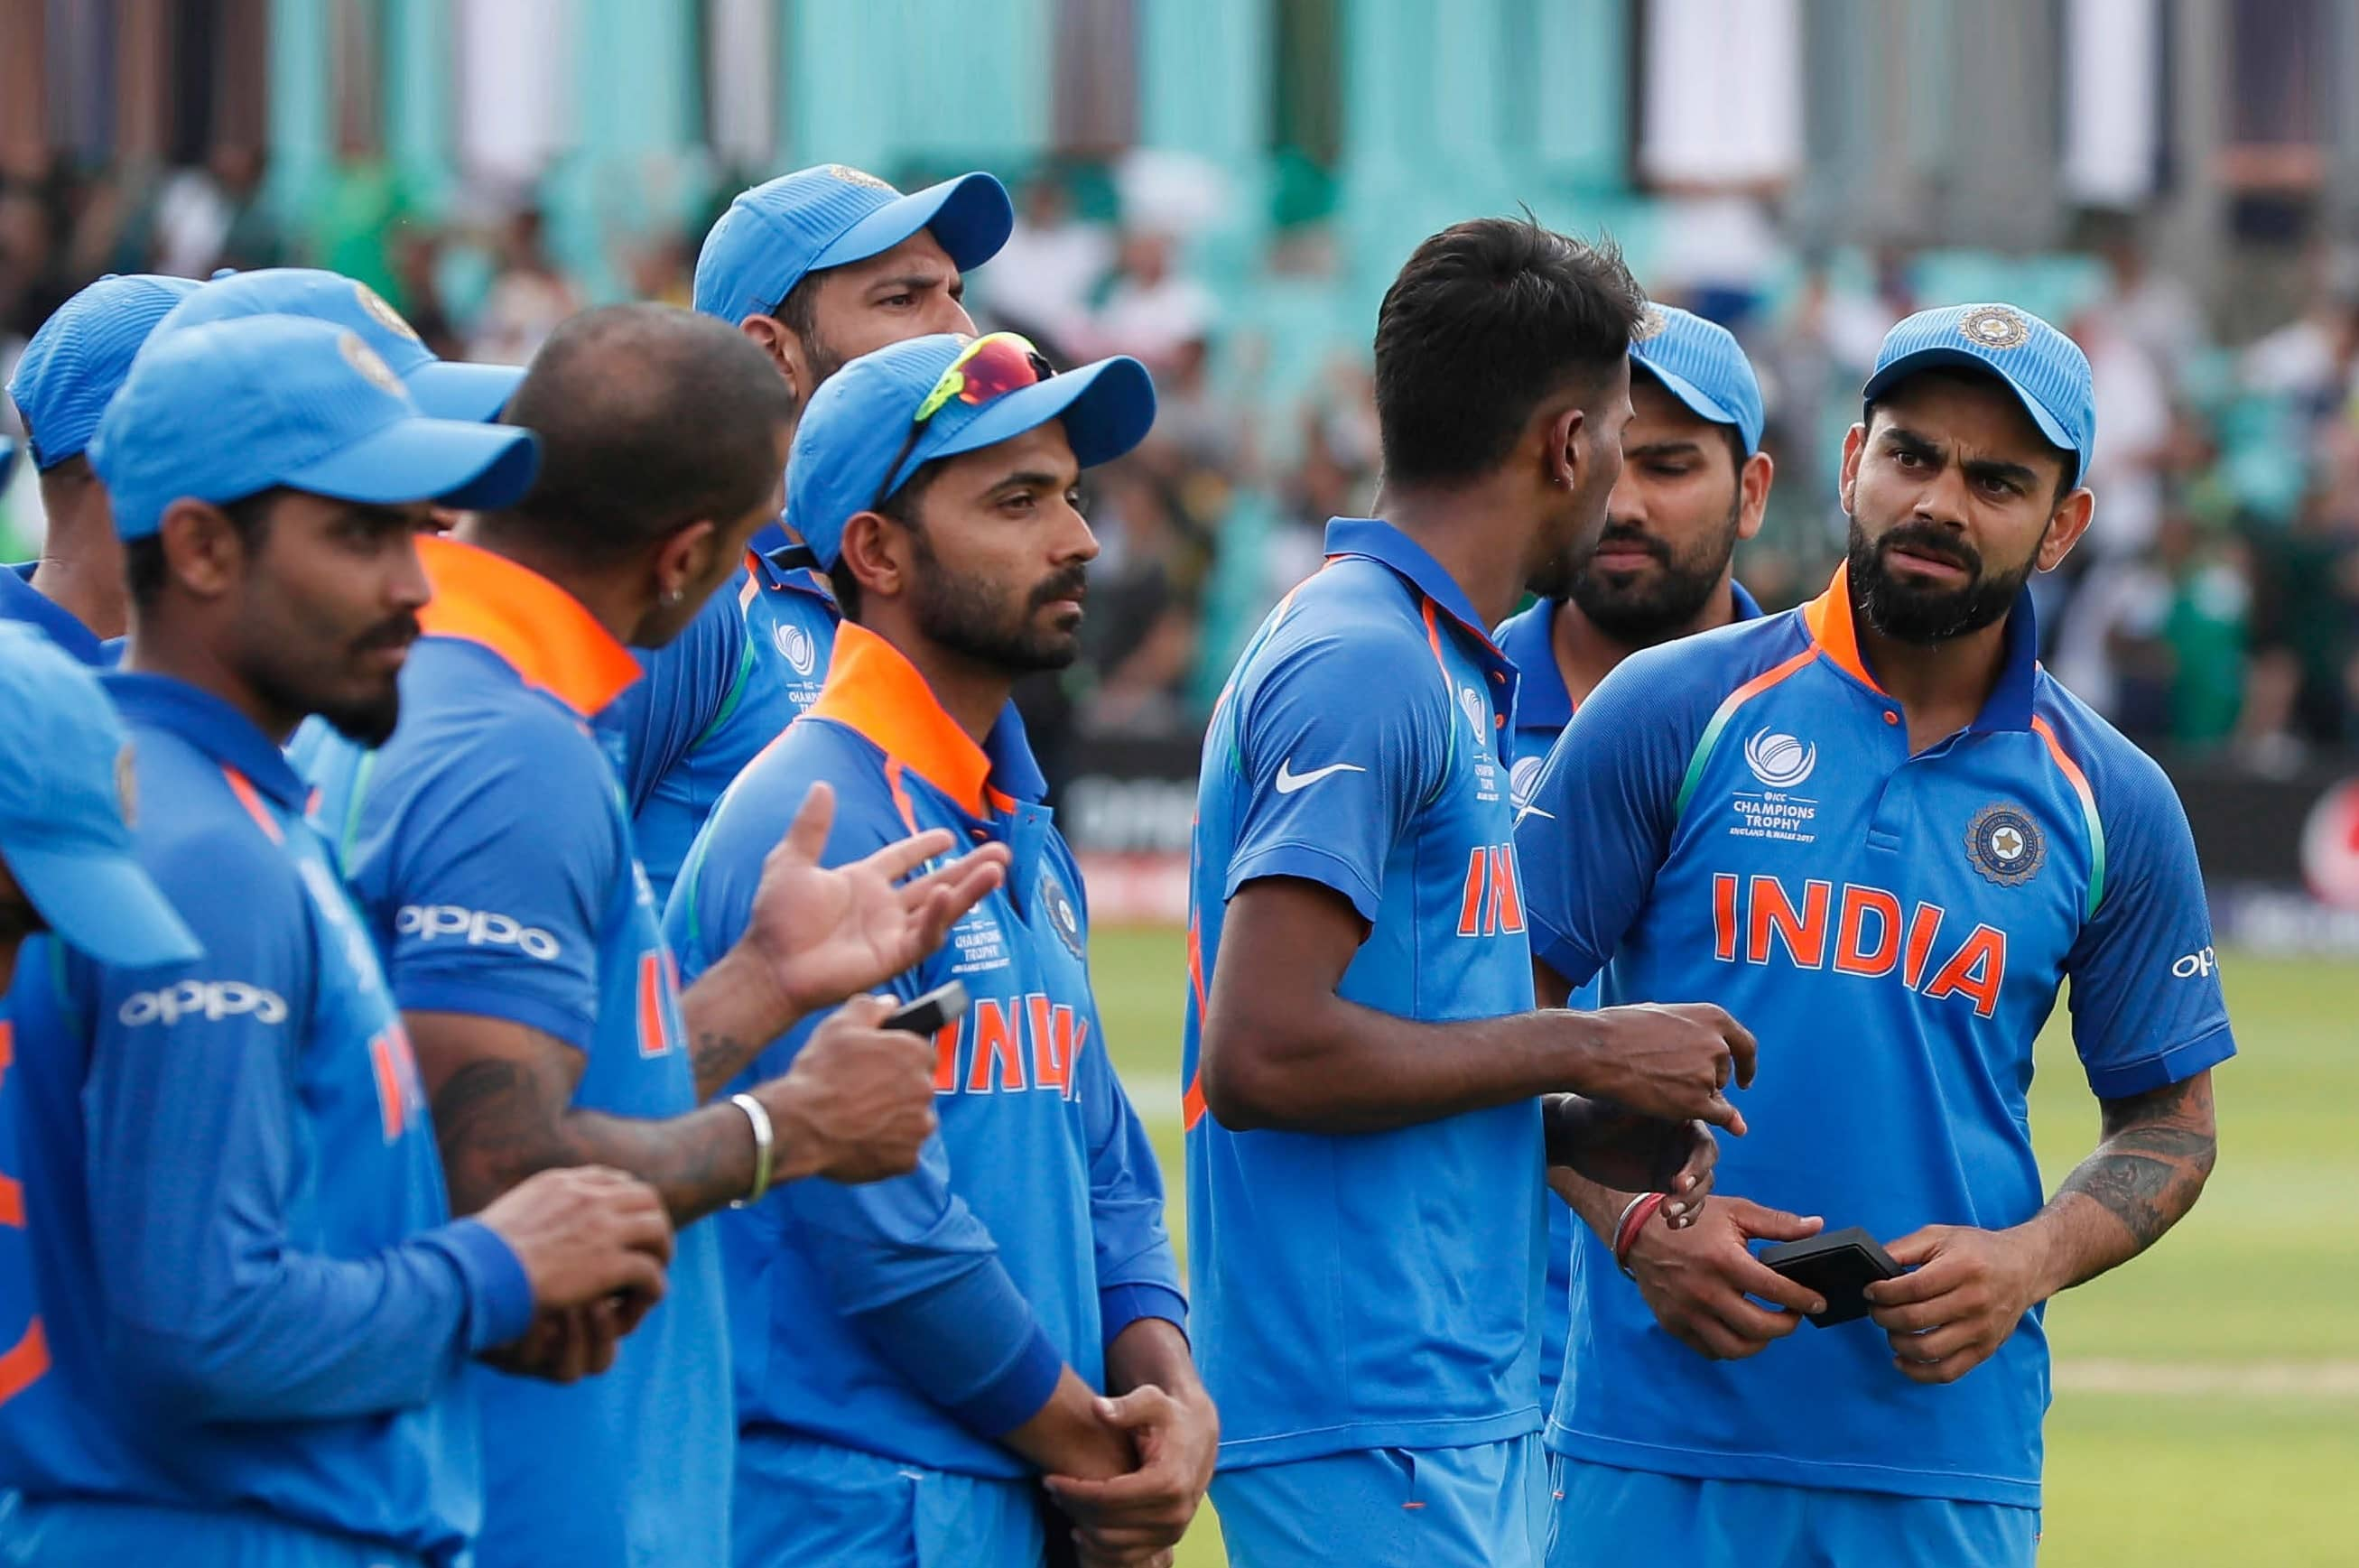 Is The Current Indian Team Overrated?